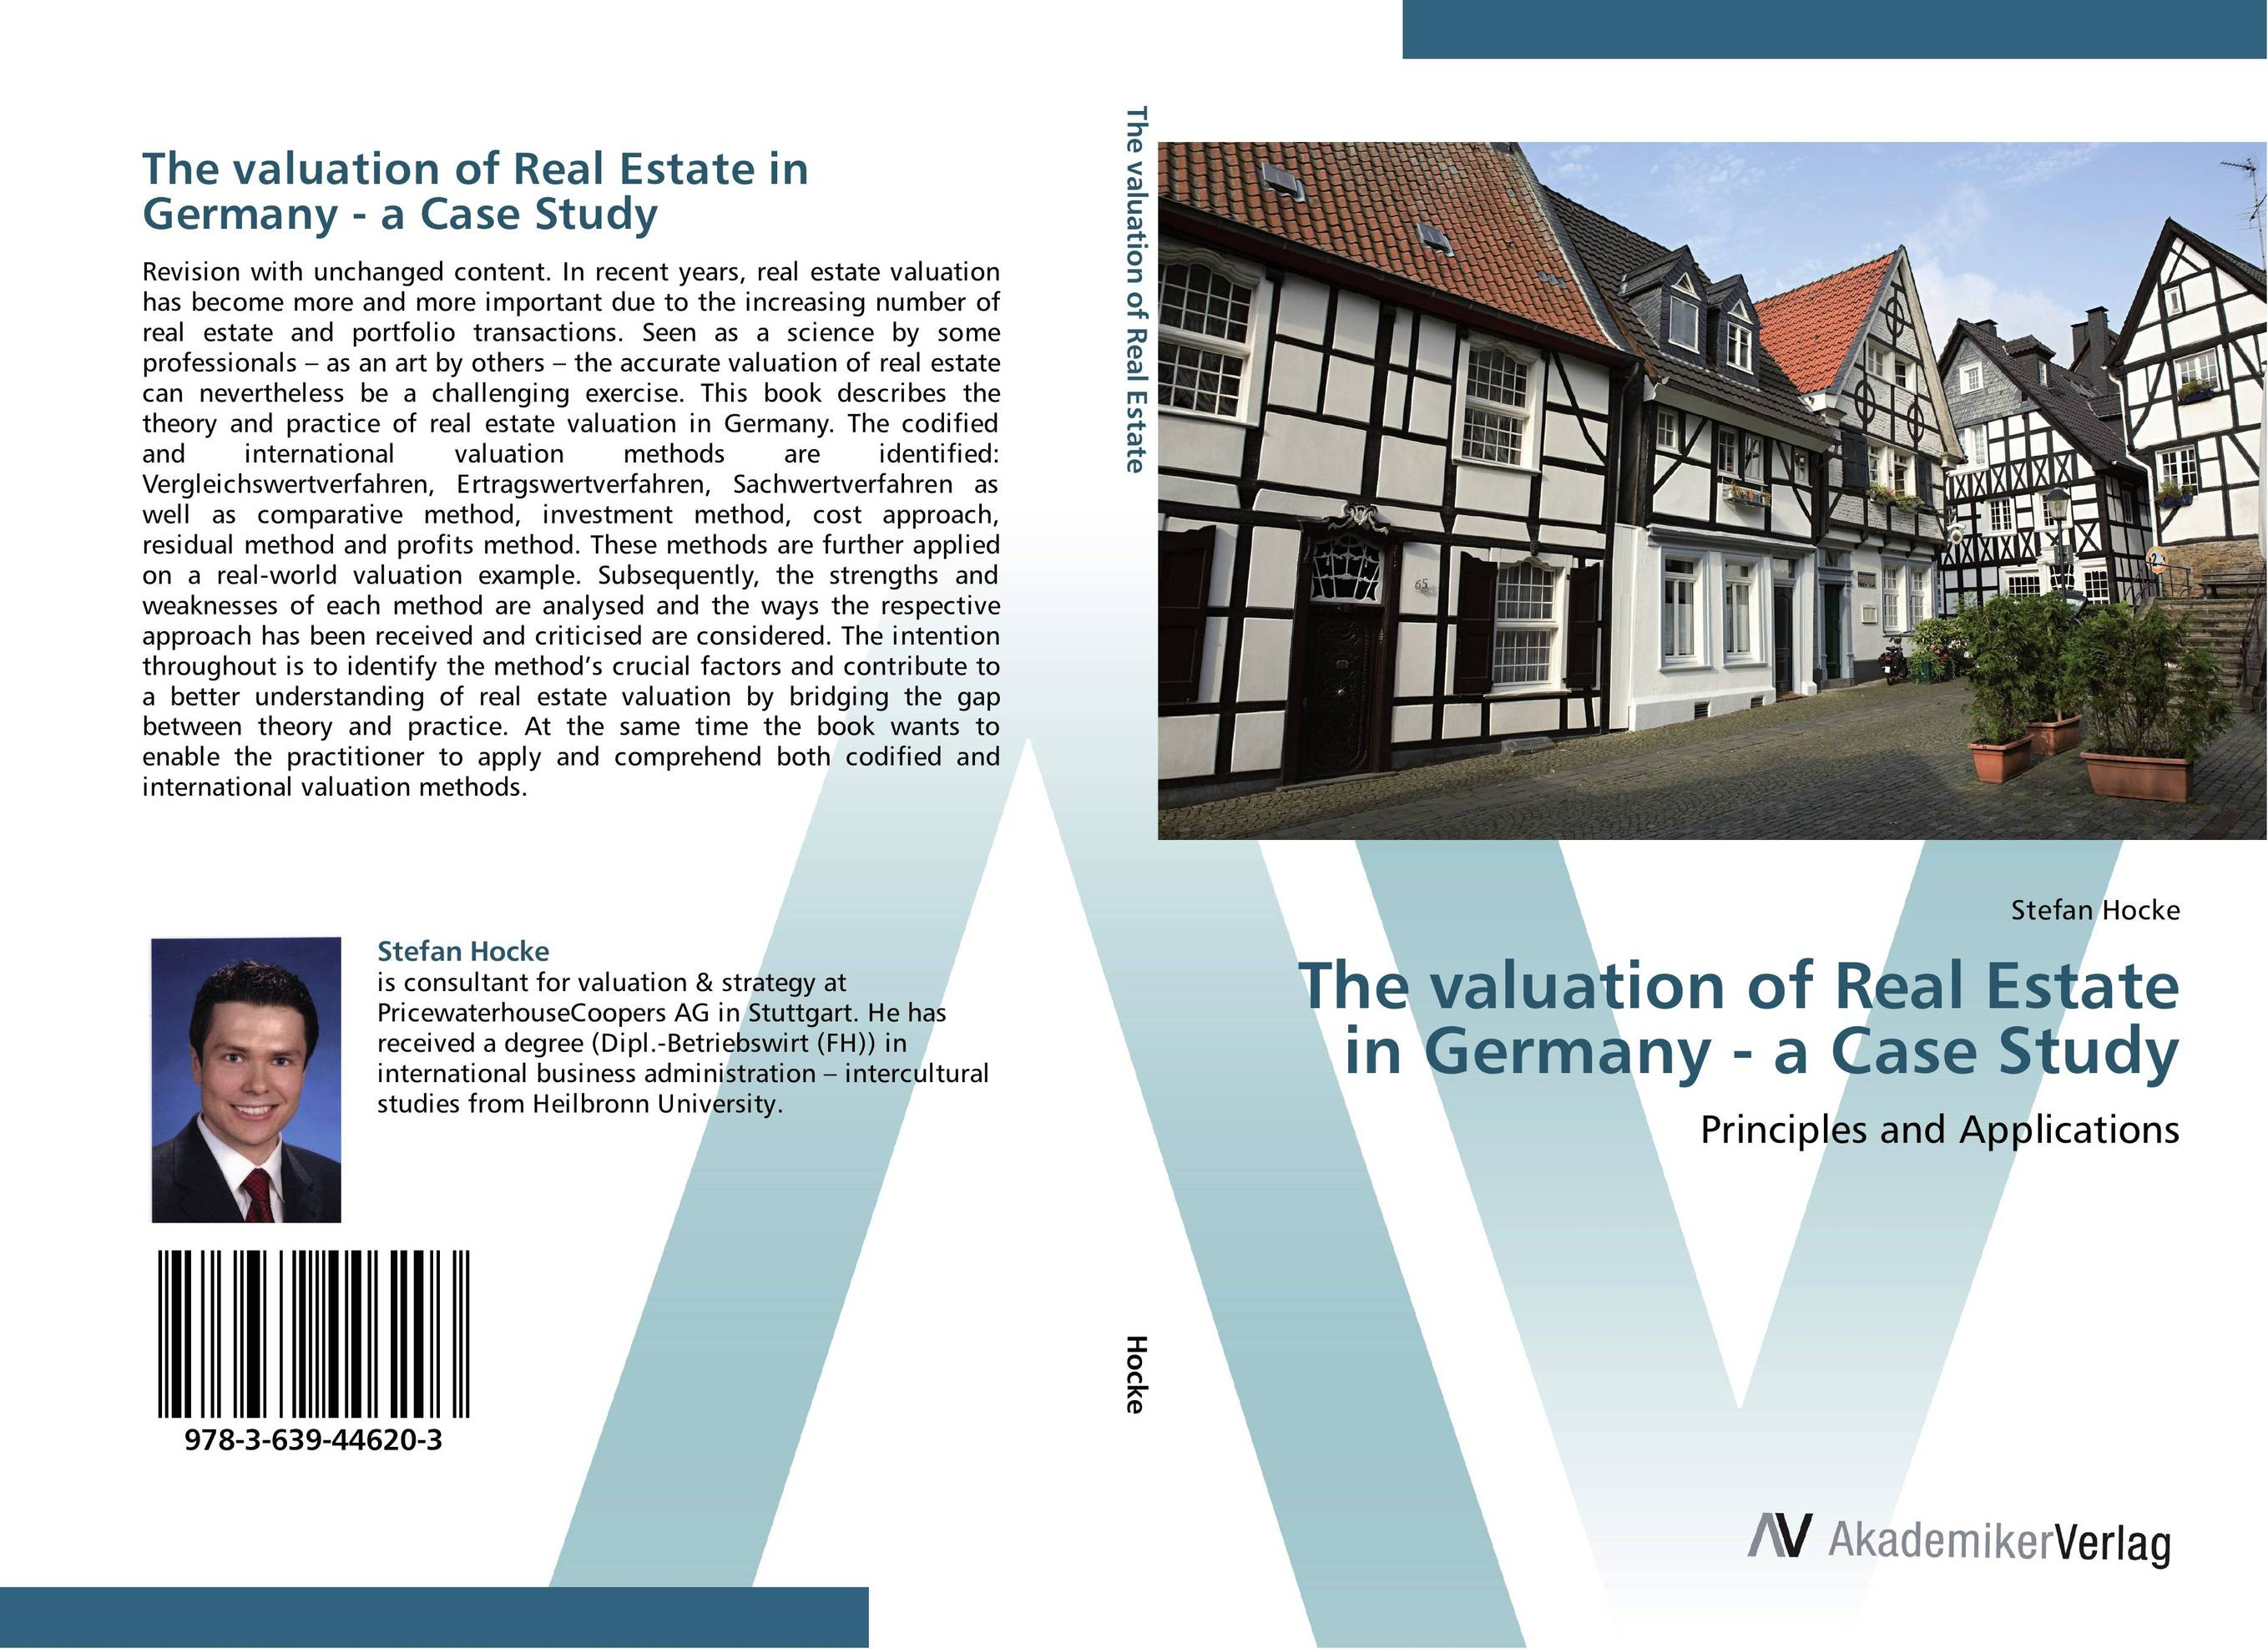 The valuation of Real Estate in Germany - a Case Study obioma ebisike a real estate accounting made easy